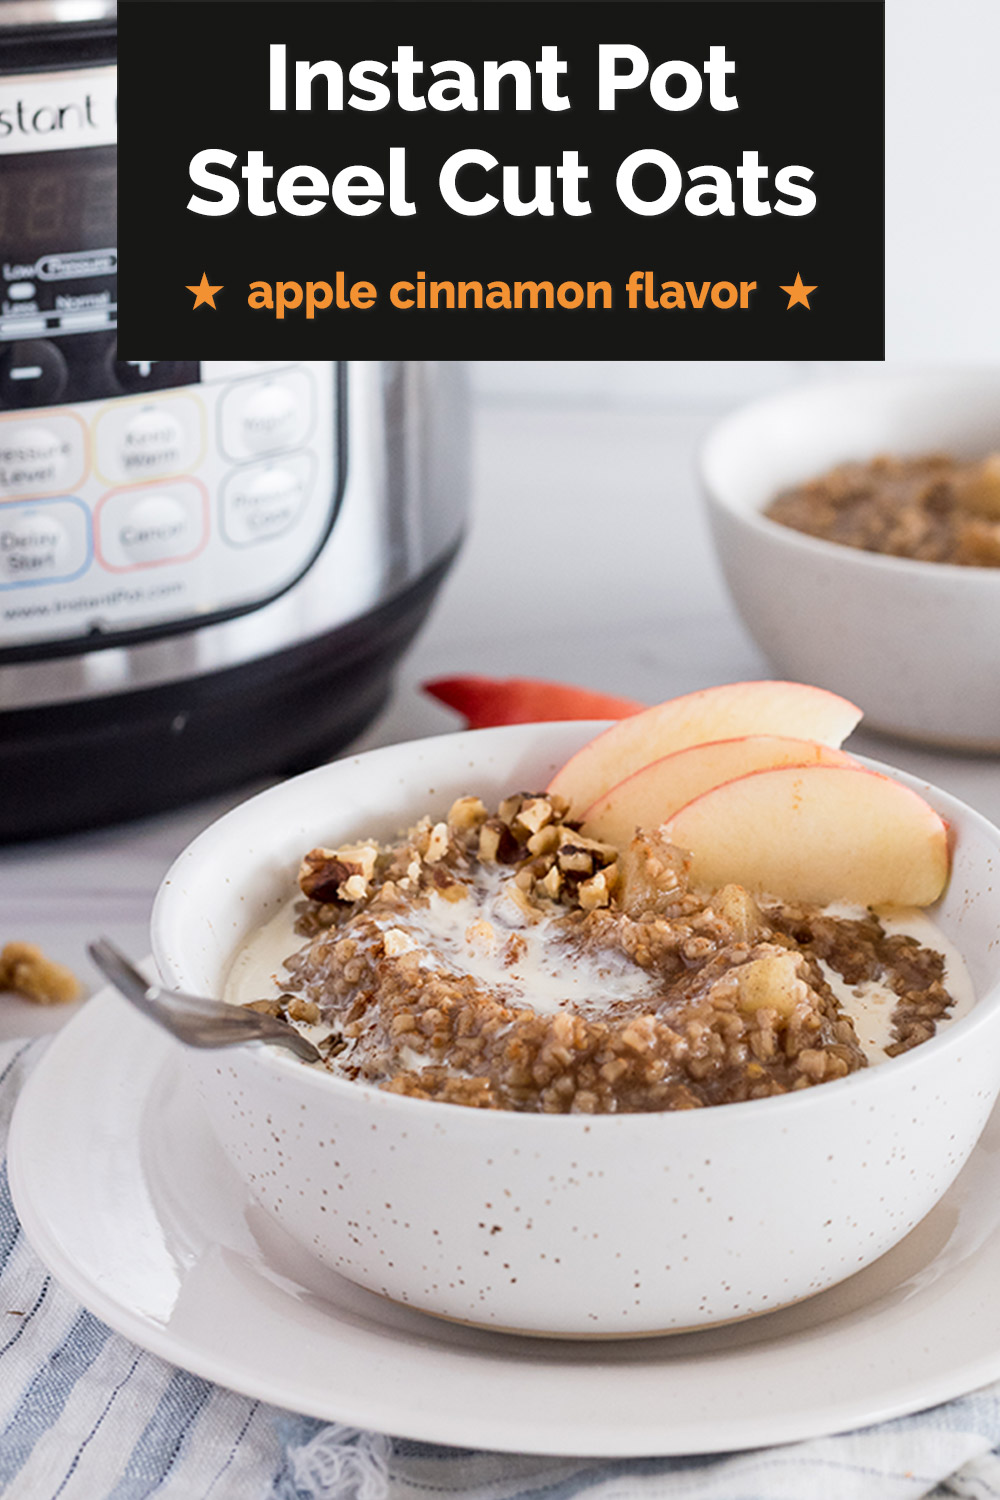 Instant Pot Apple Cinnamon Steel Cut Oats via @PressureCook2da